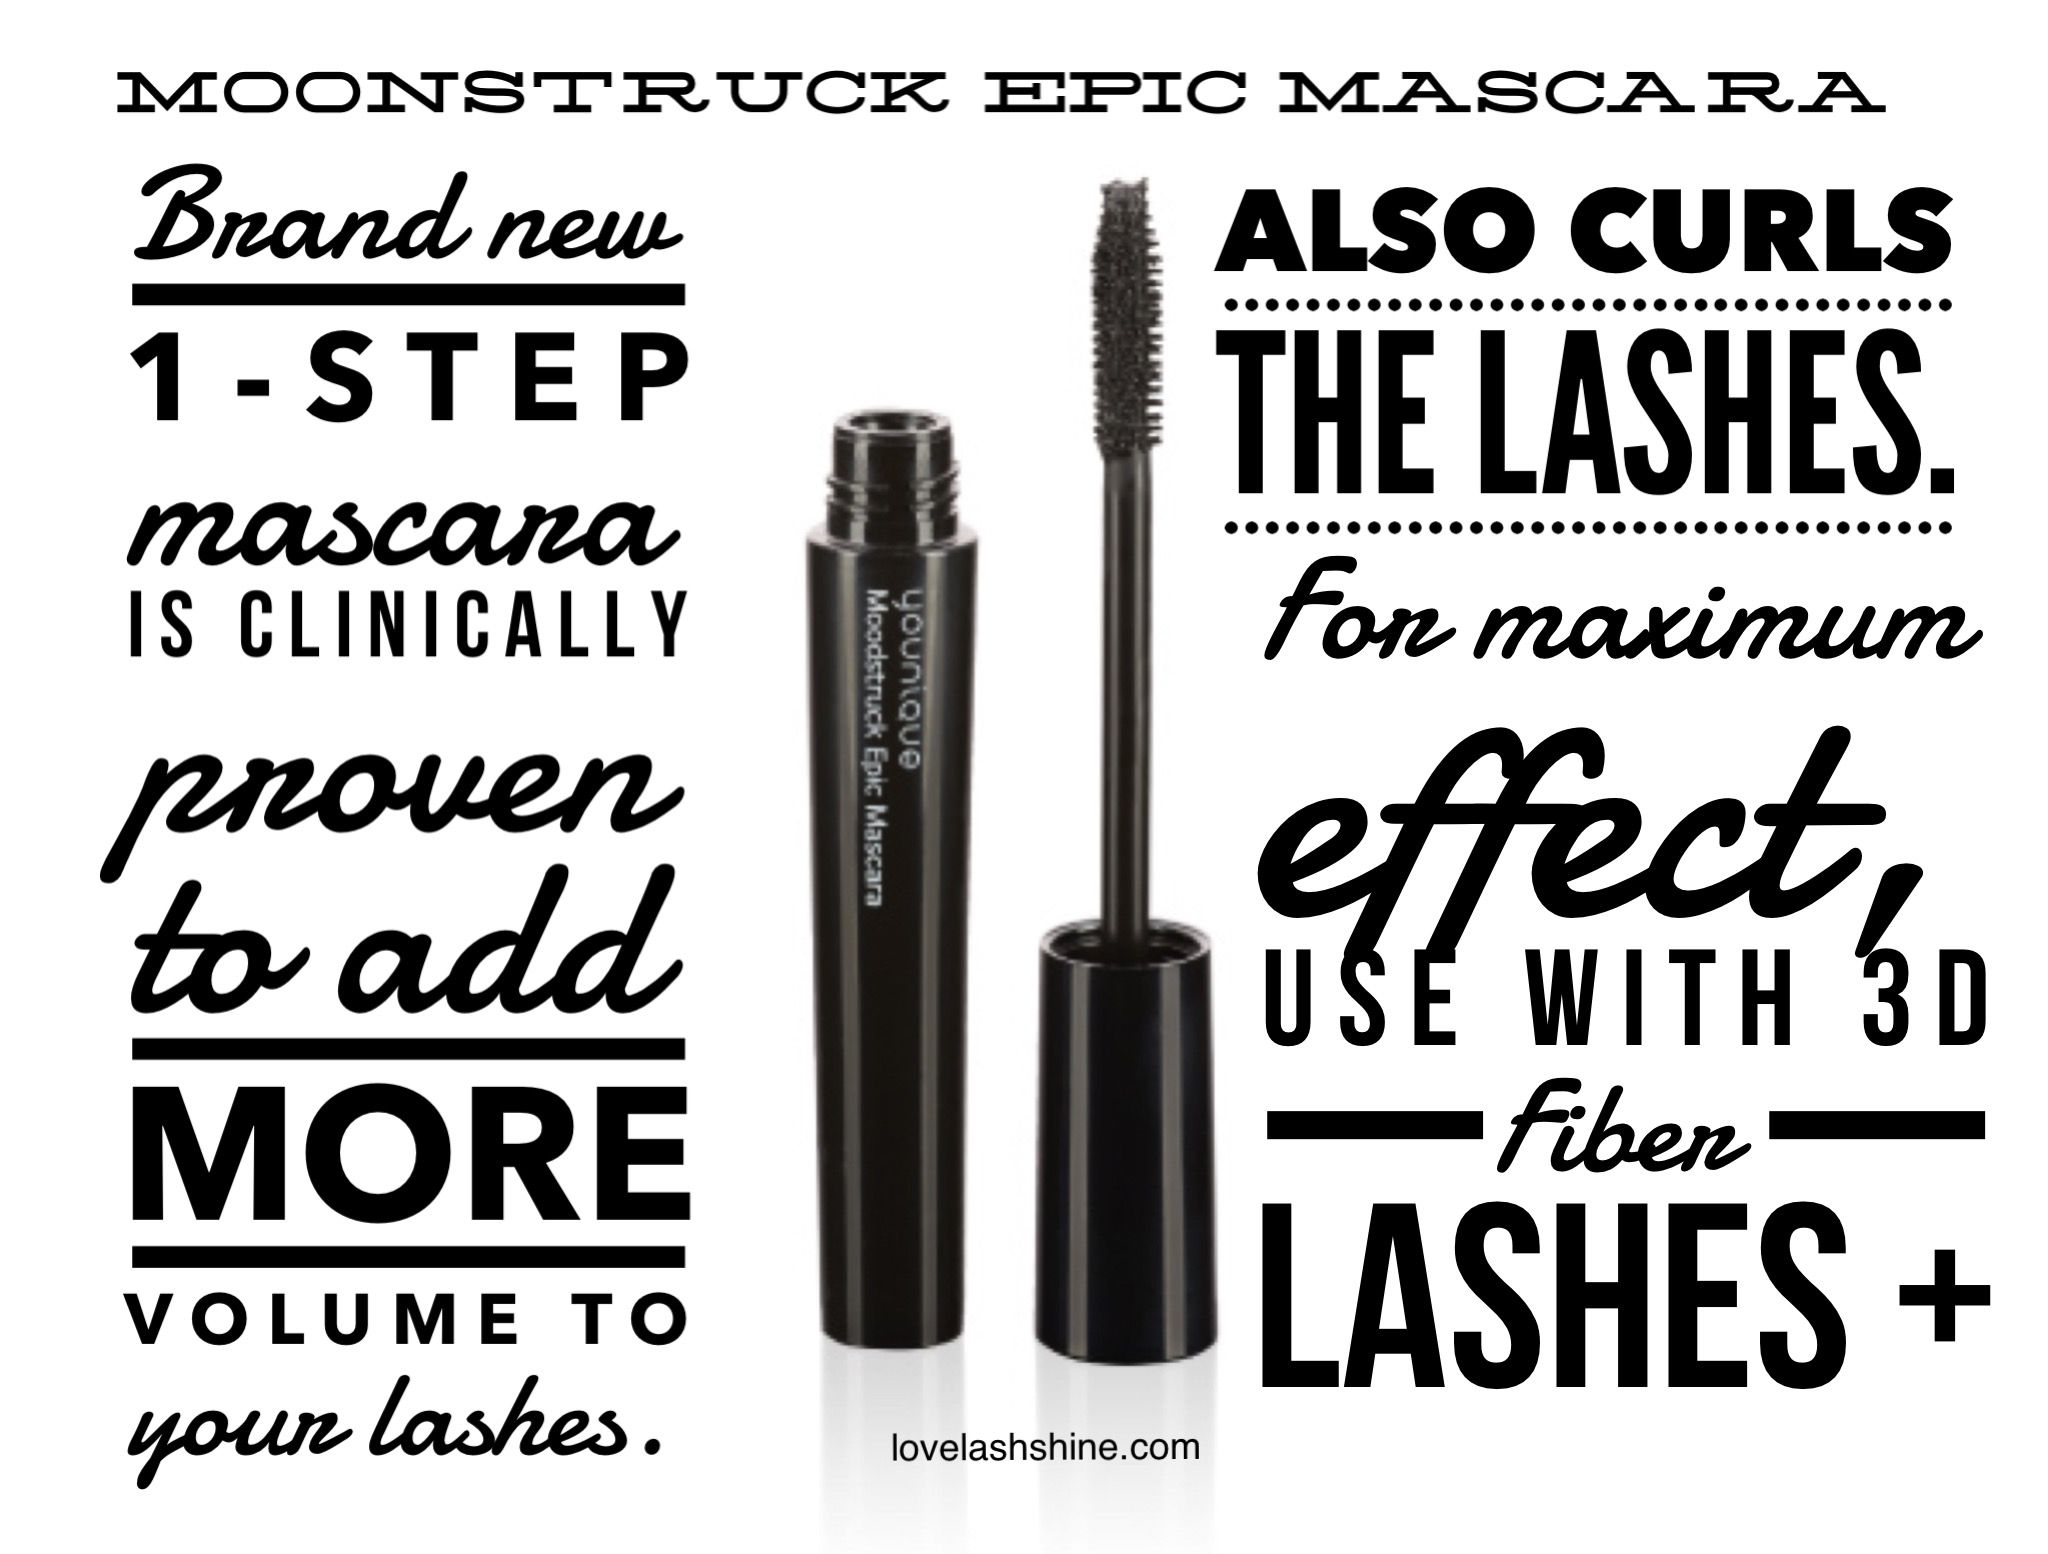 d023637e0cf Younique's new Moonstruck Epic Mascara curls lashes | Younique ...